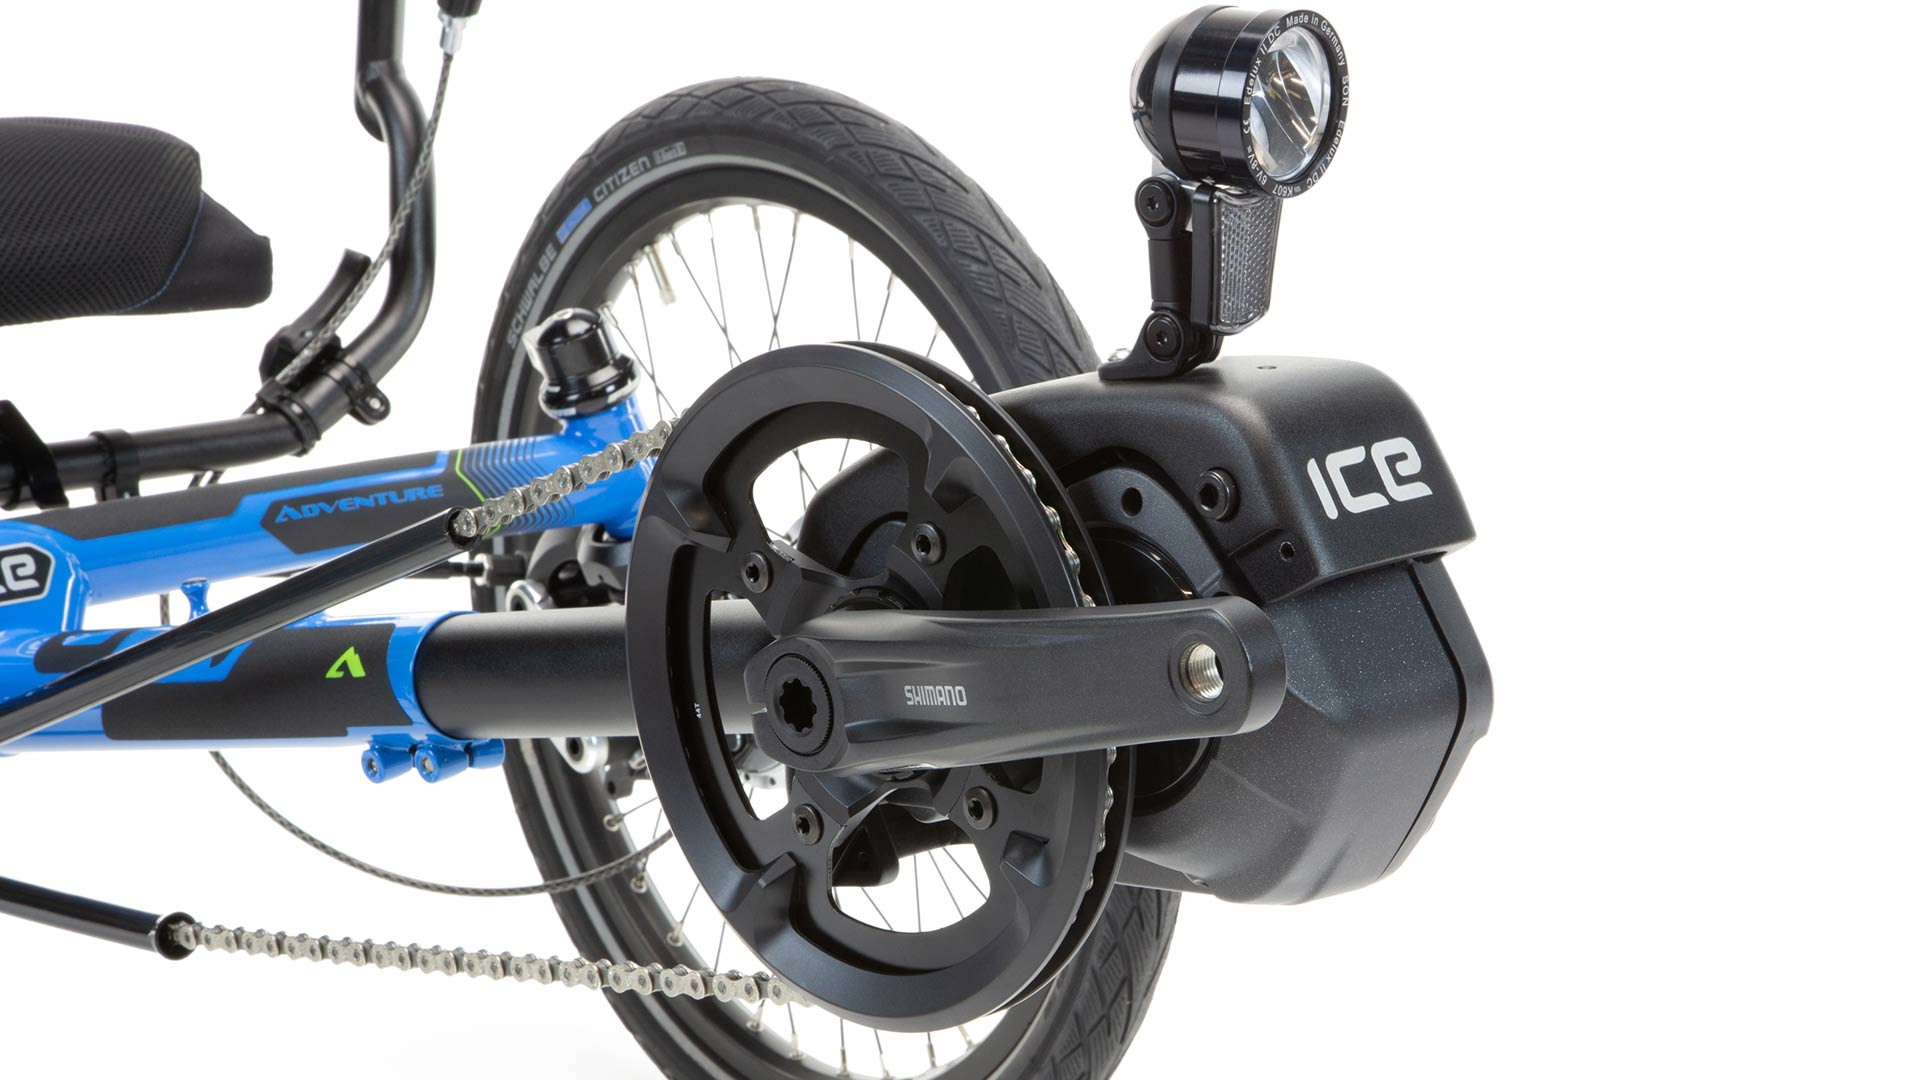 Test Riding an Ice Adventure with Shimano STEPS E-8000